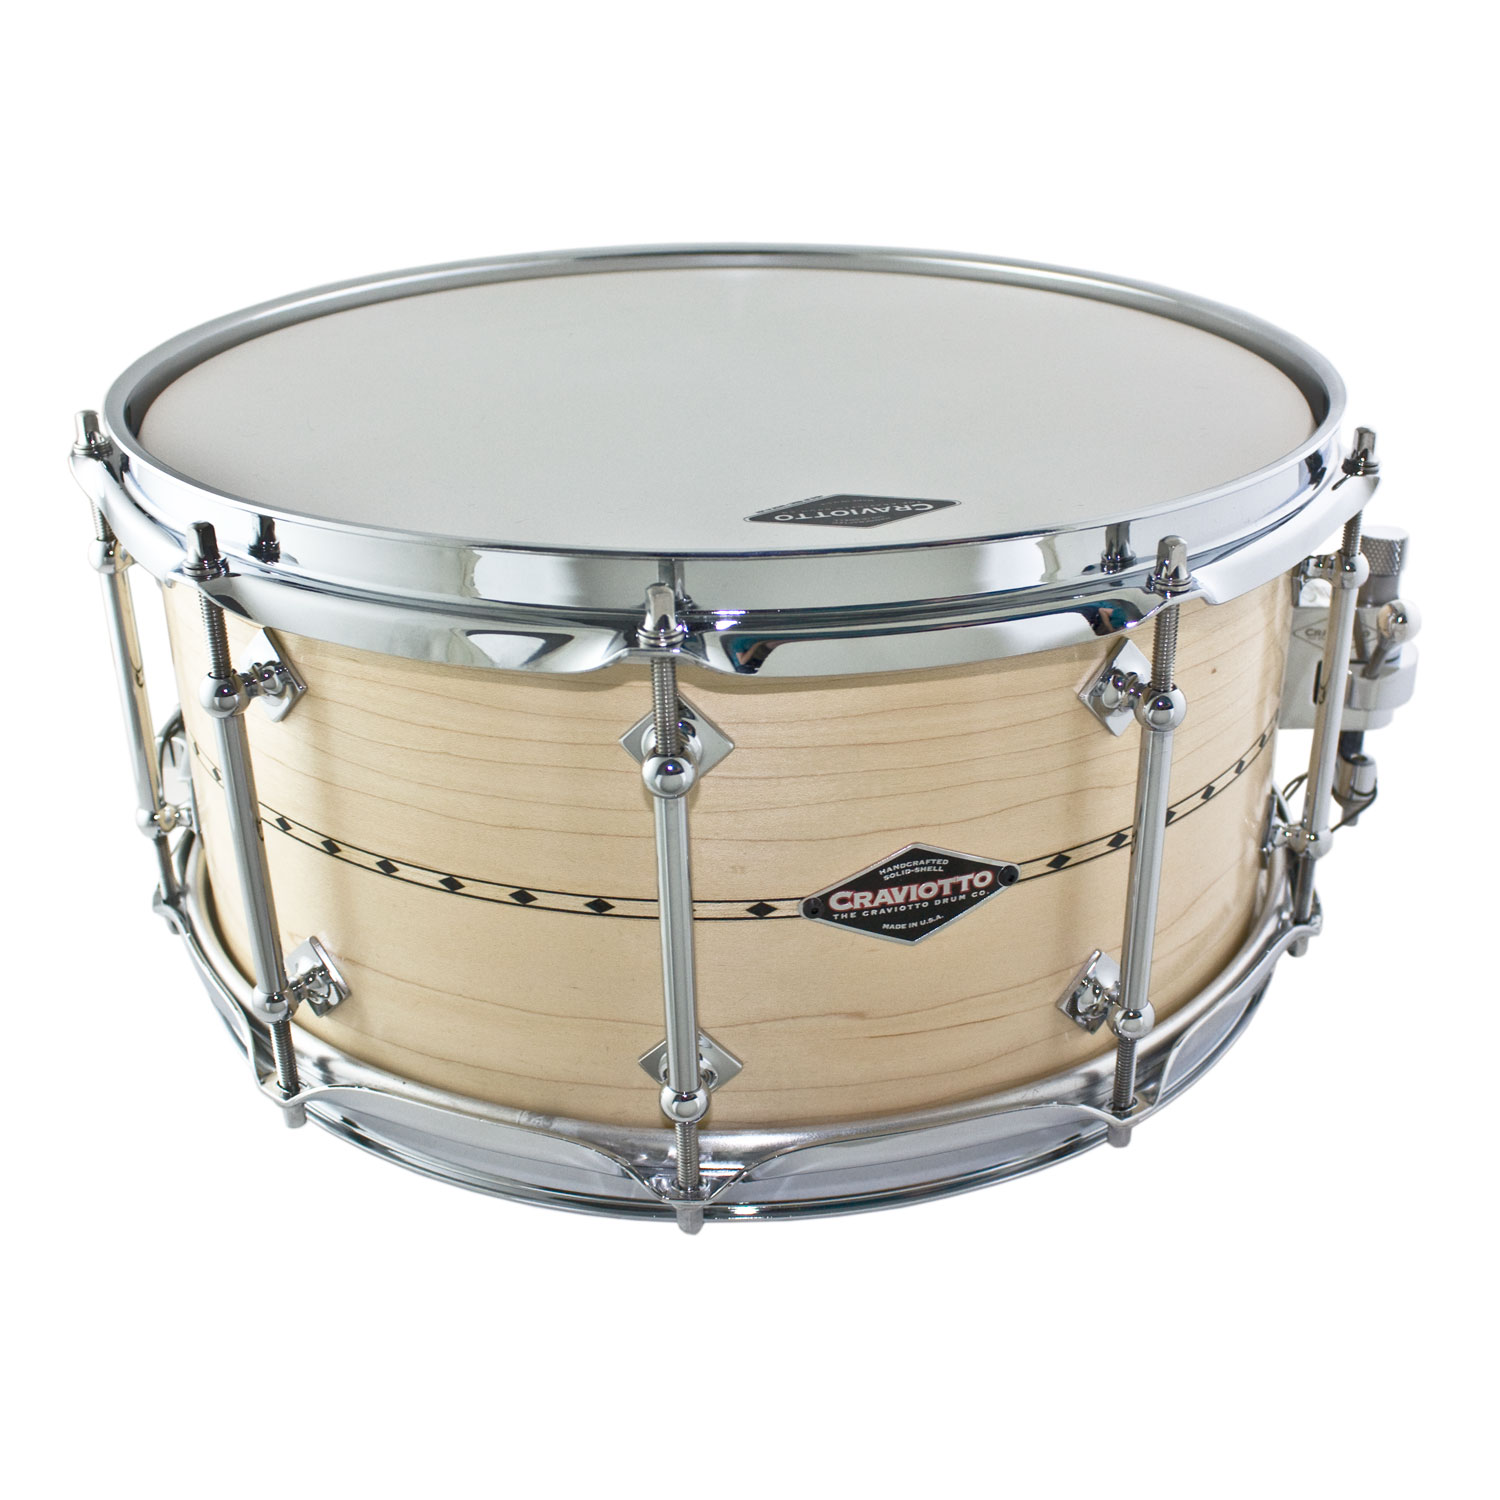 "Craviotto 6.5"" x 14"" Custom Shop Solid Shell Maple Snare Drum with Inlay"